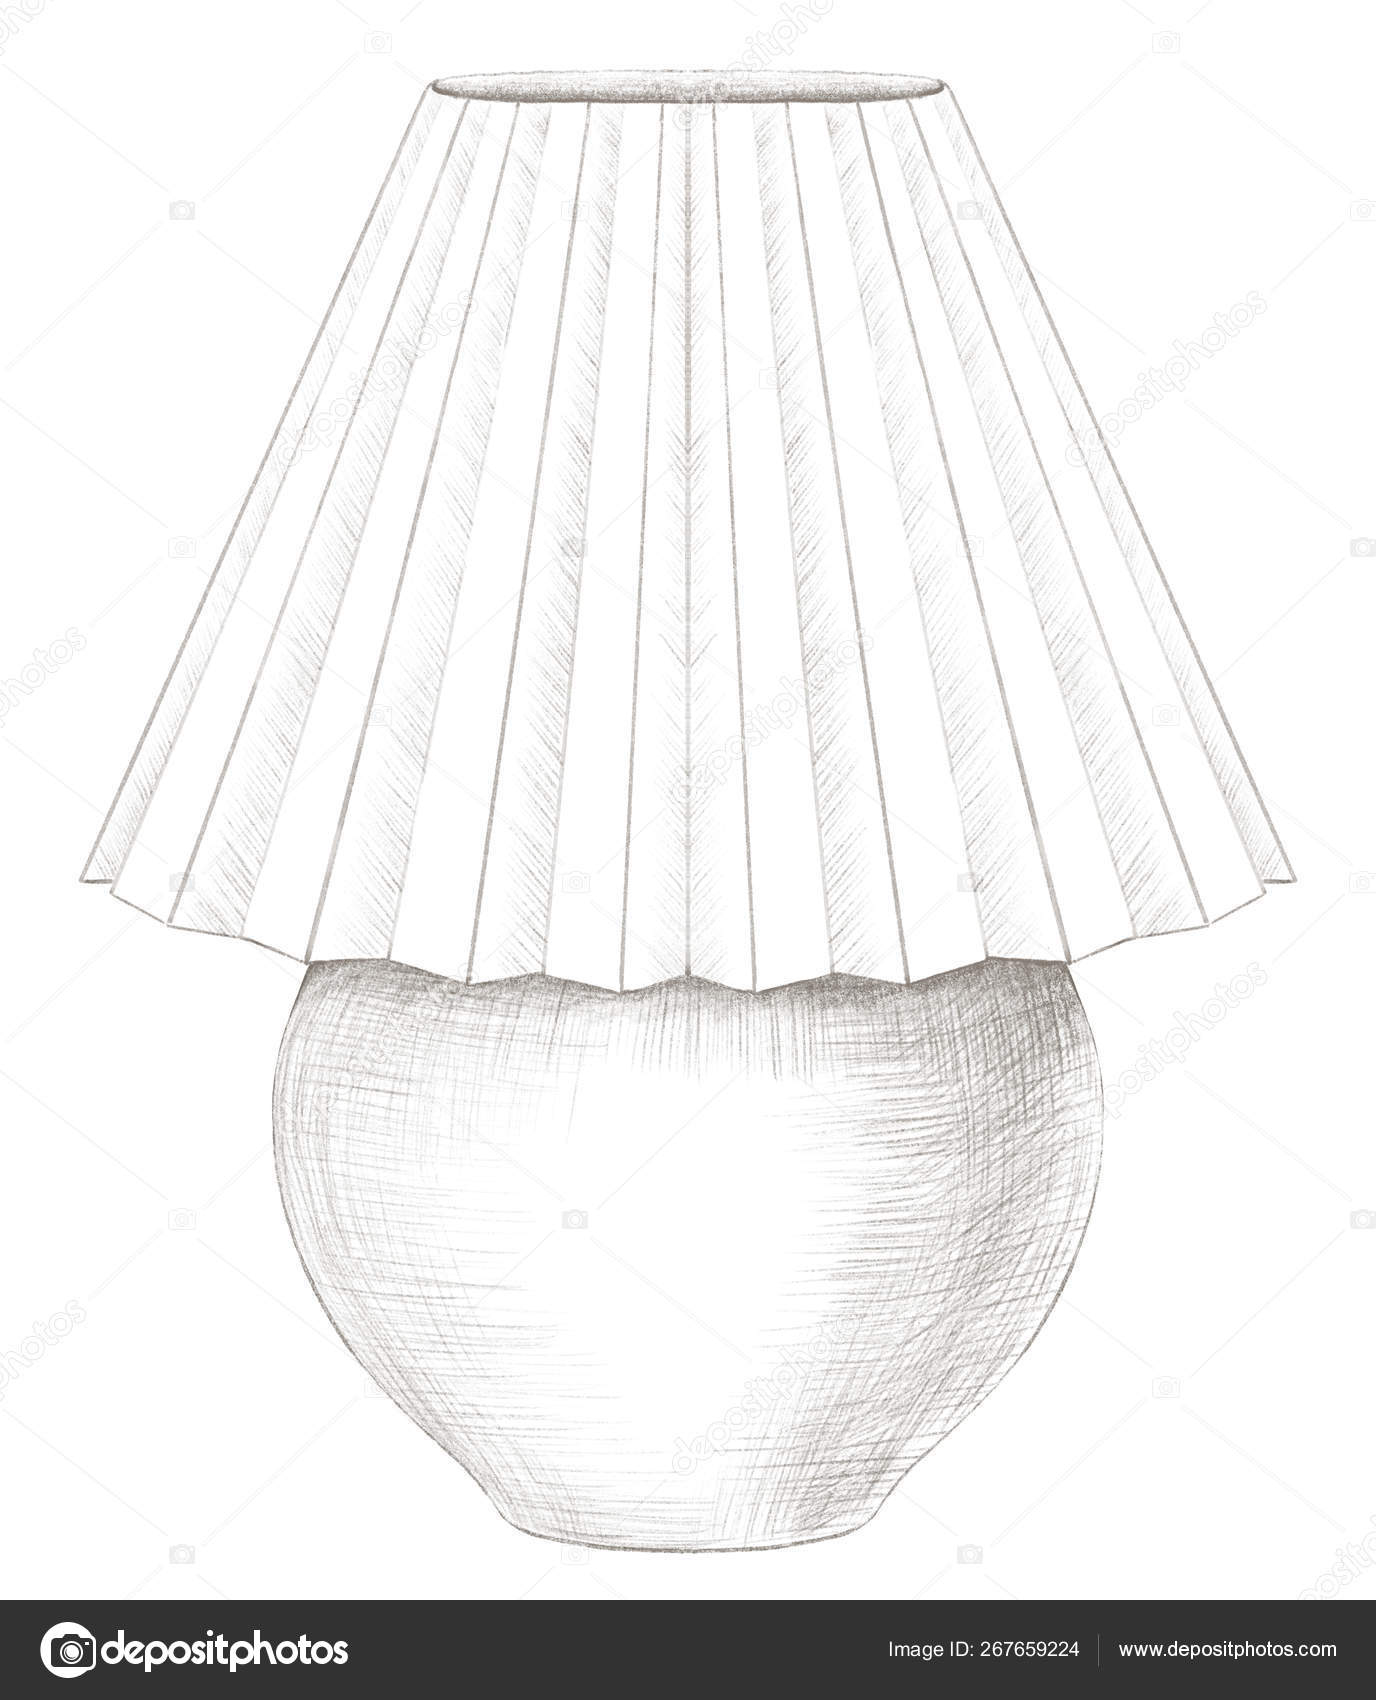 Drawing Of Lamp Shade Pencil Drawing With Table Lamp With Lampshade Stock Photo C Mimomy 267659224